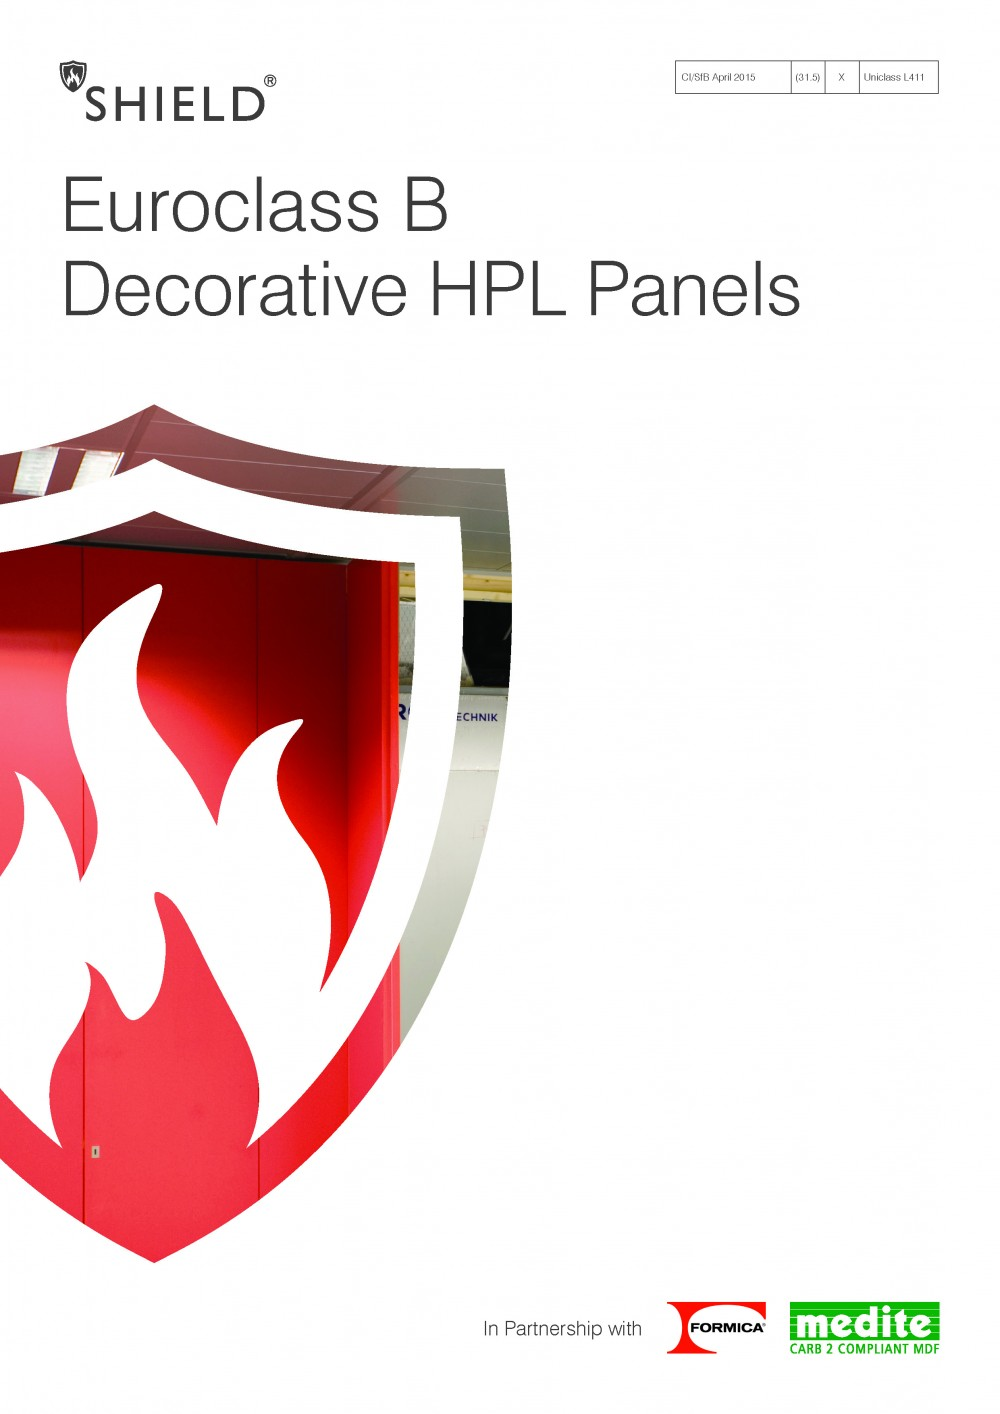 Euroclass B decorative HPL panel